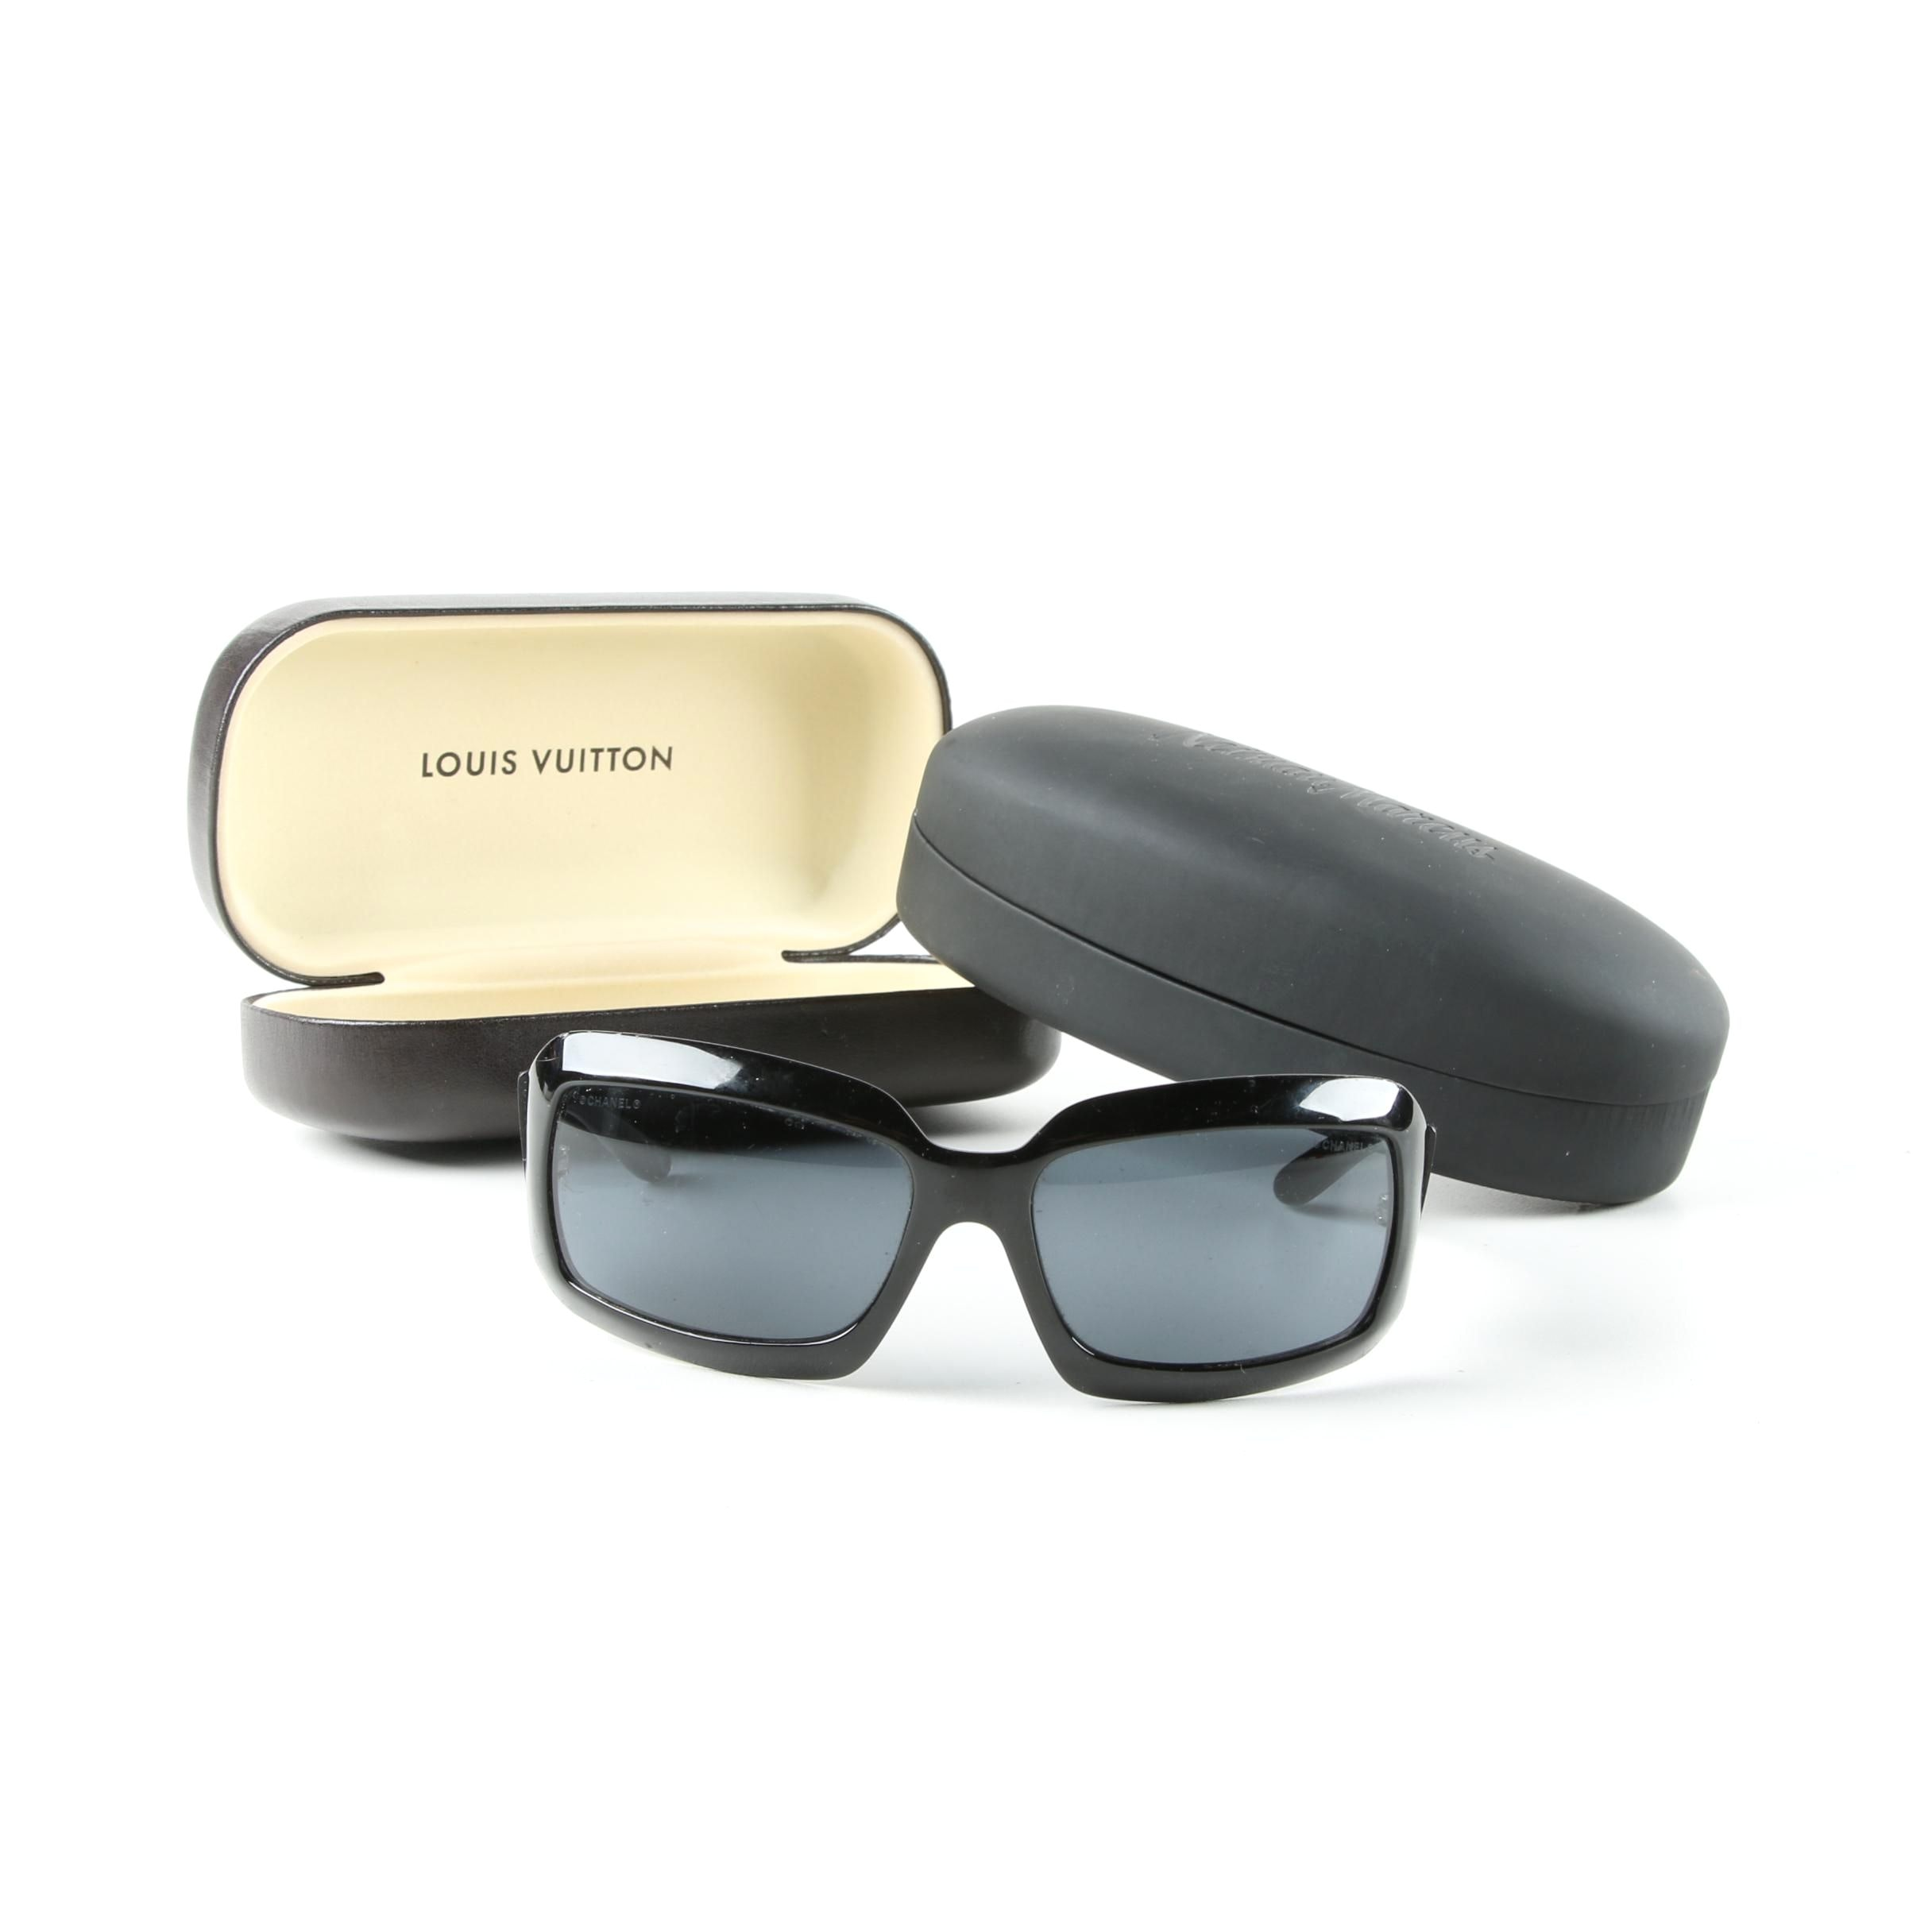 Chanel 5076-H Black and Mother of Pearl Sunglasses Including Hard Cases